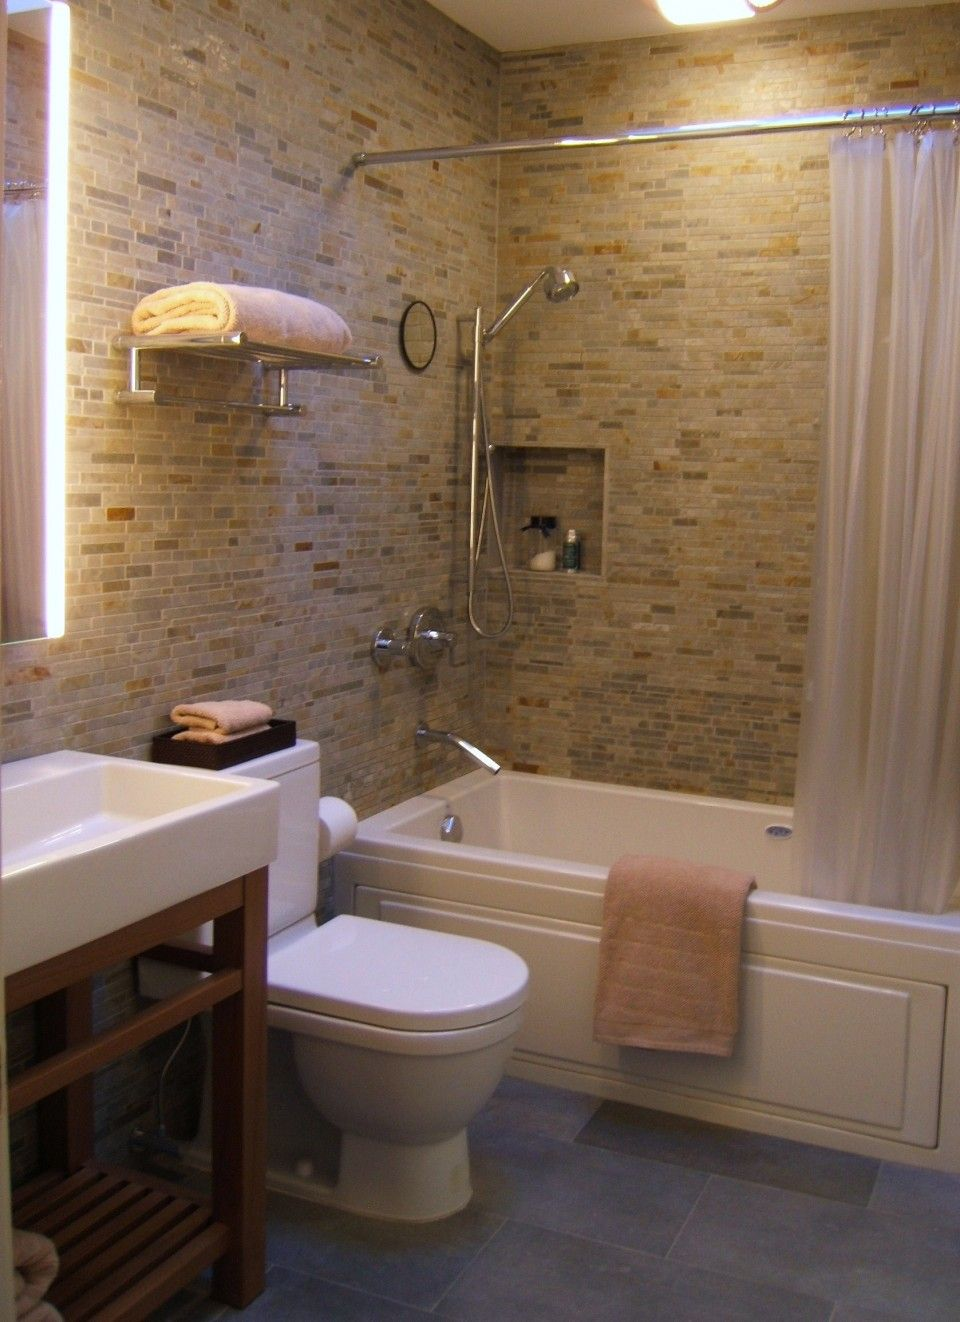 5 Decorating Ideas For Small Bathrooms: Recommendation Small Bathroom Renovation Ideas On A Budget